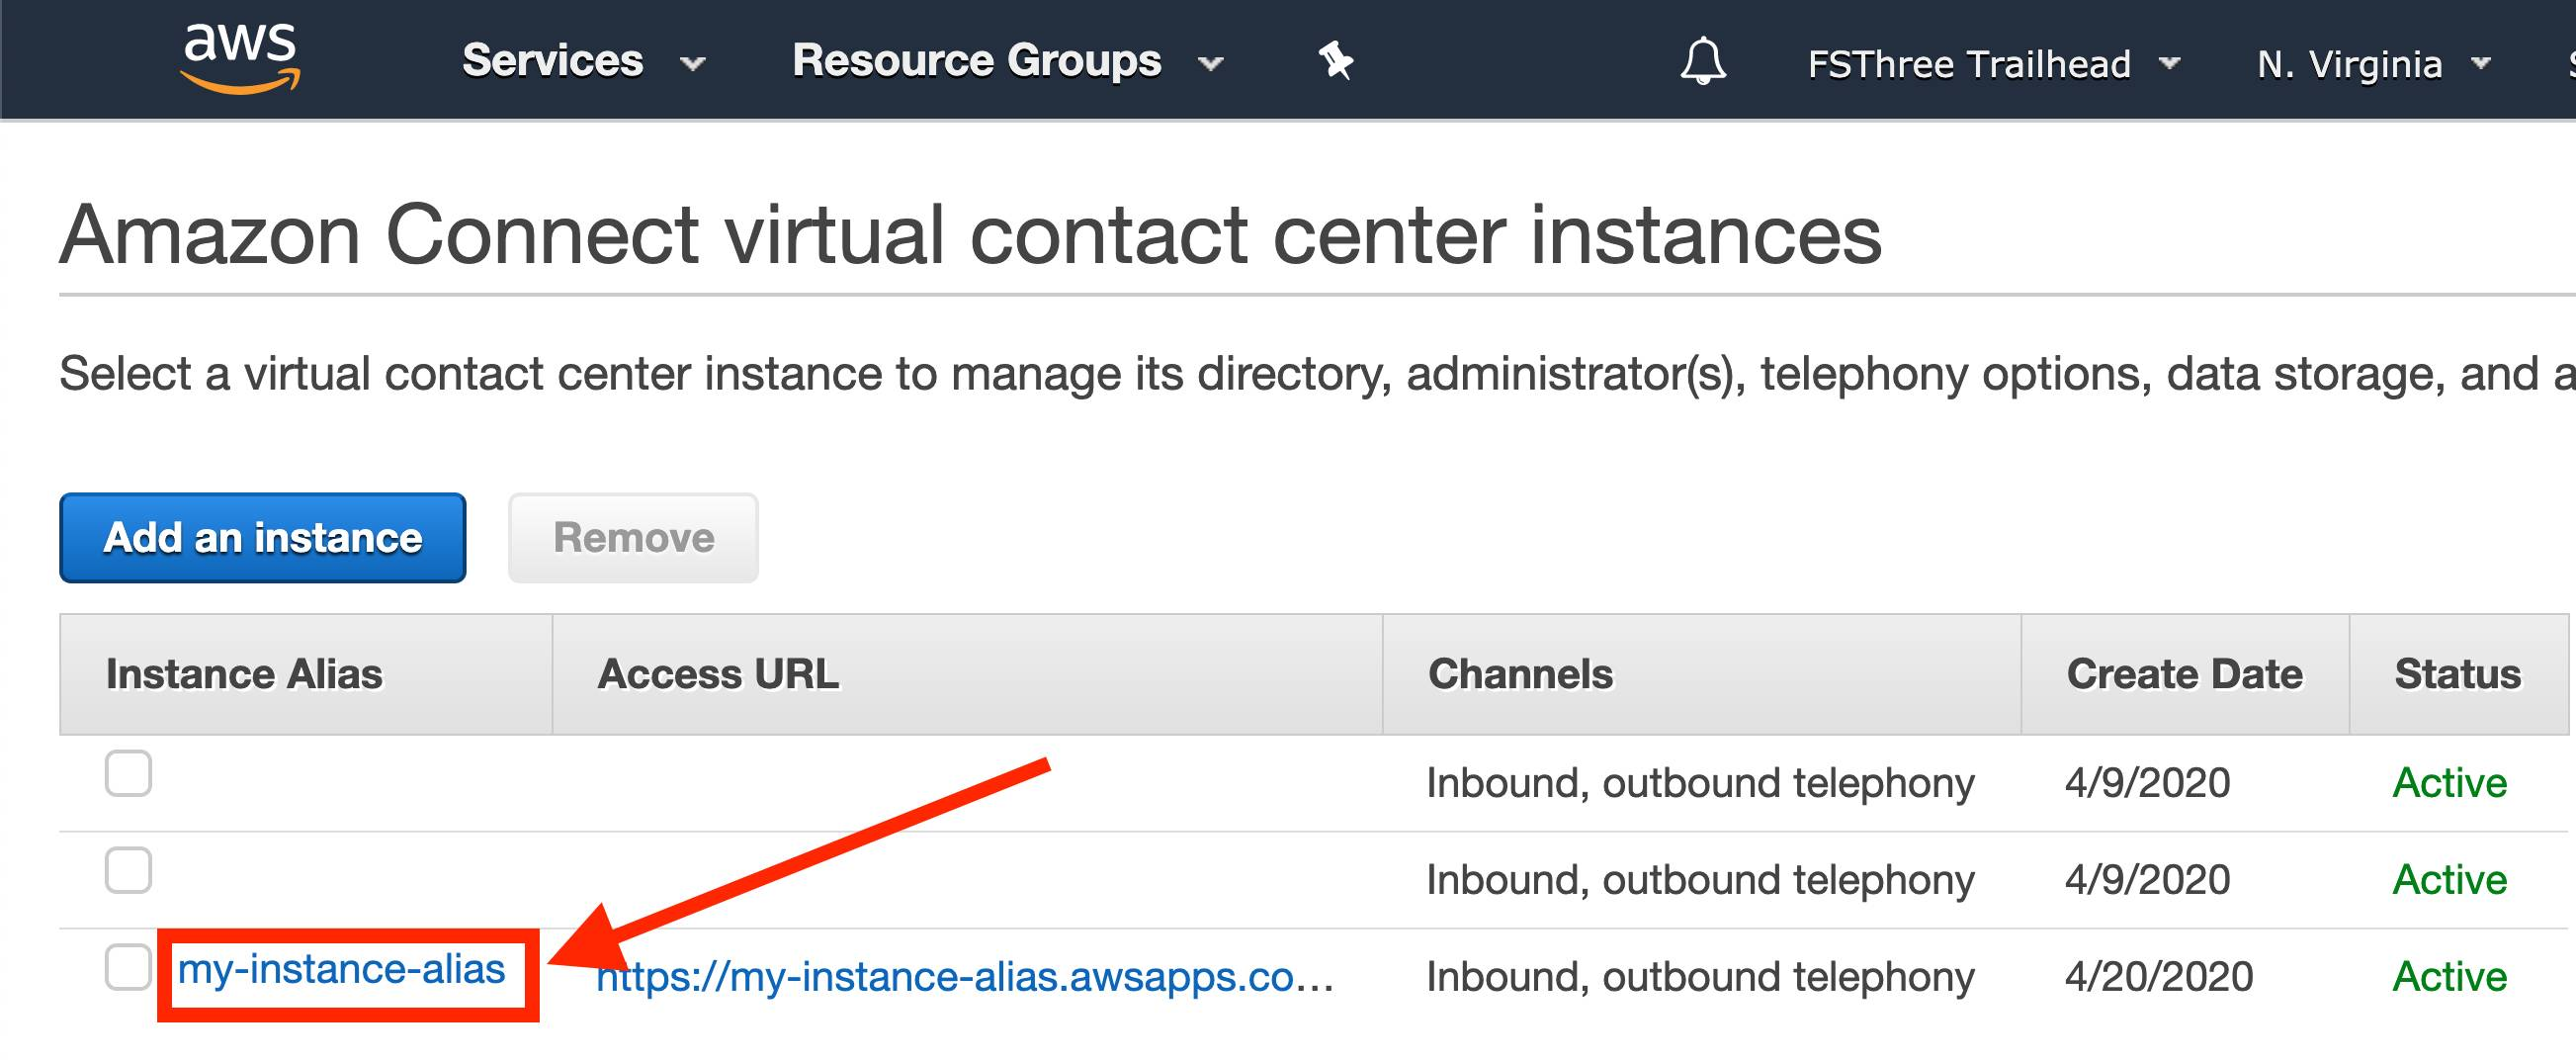 Amazon Connect with an instance alias highlighted by a red box and arrow